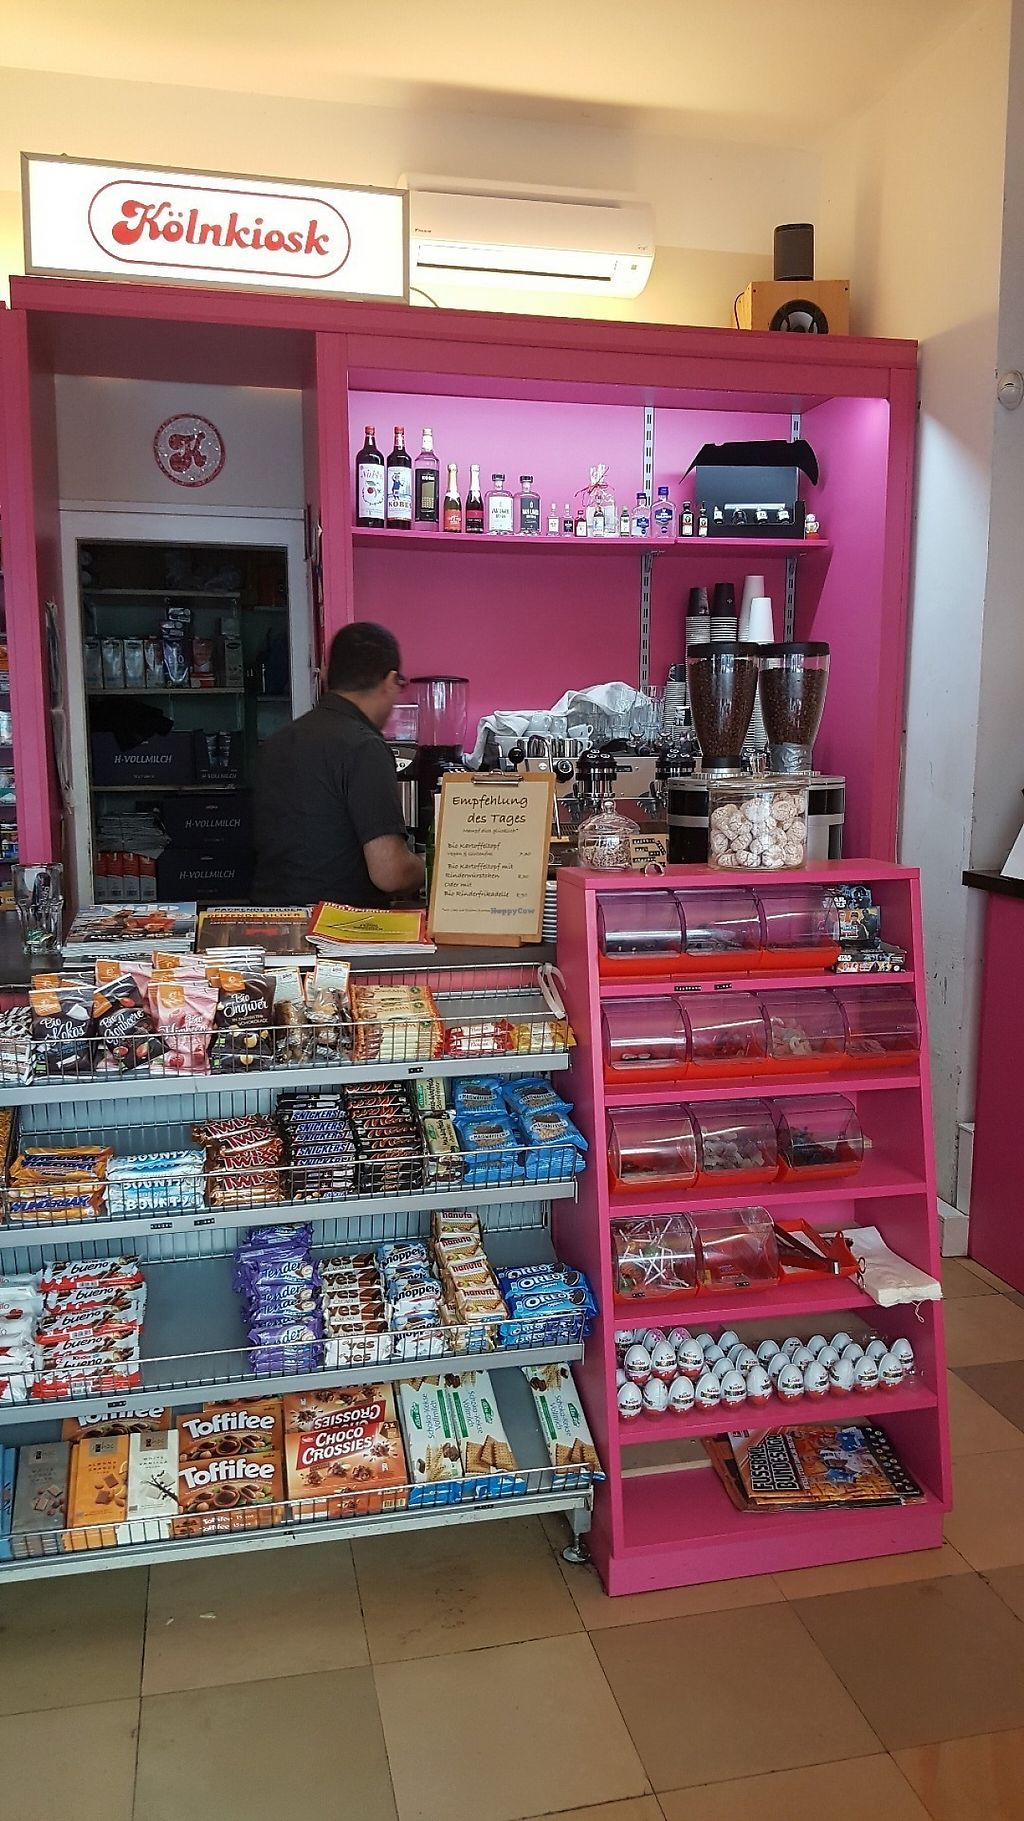 """Photo of Koln Kiosk  by <a href=""""/members/profile/TinaEstrella"""">TinaEstrella</a> <br/>Coffee bar and typical Cologne Büdchen Kiosk <br/> May 29, 2017  - <a href='/contact/abuse/image/92864/263702'>Report</a>"""